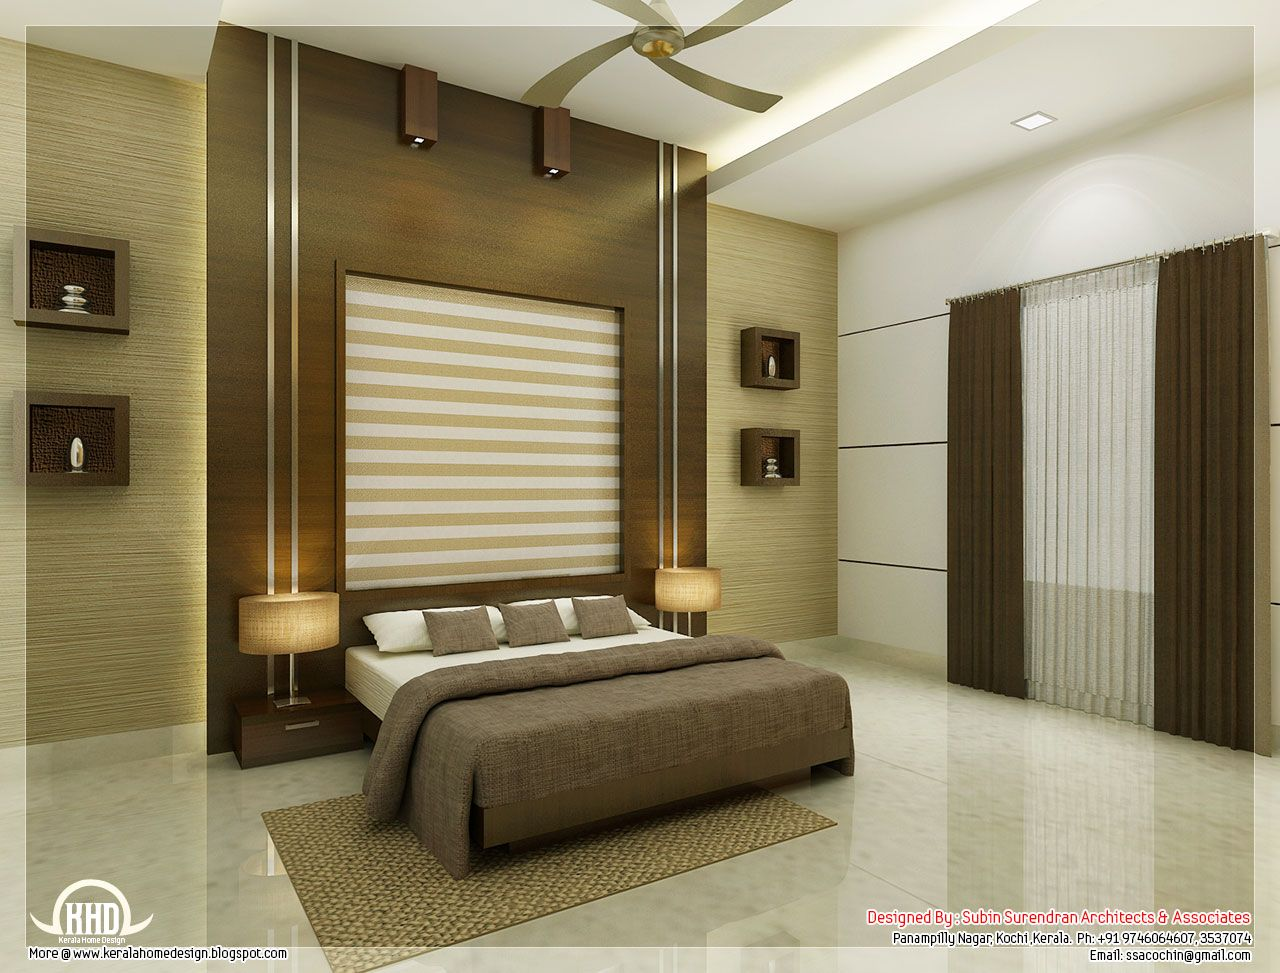 Bedroom Interior Design Beautiful Bedrooms  Beautiful Bedroom Interior Designssubin